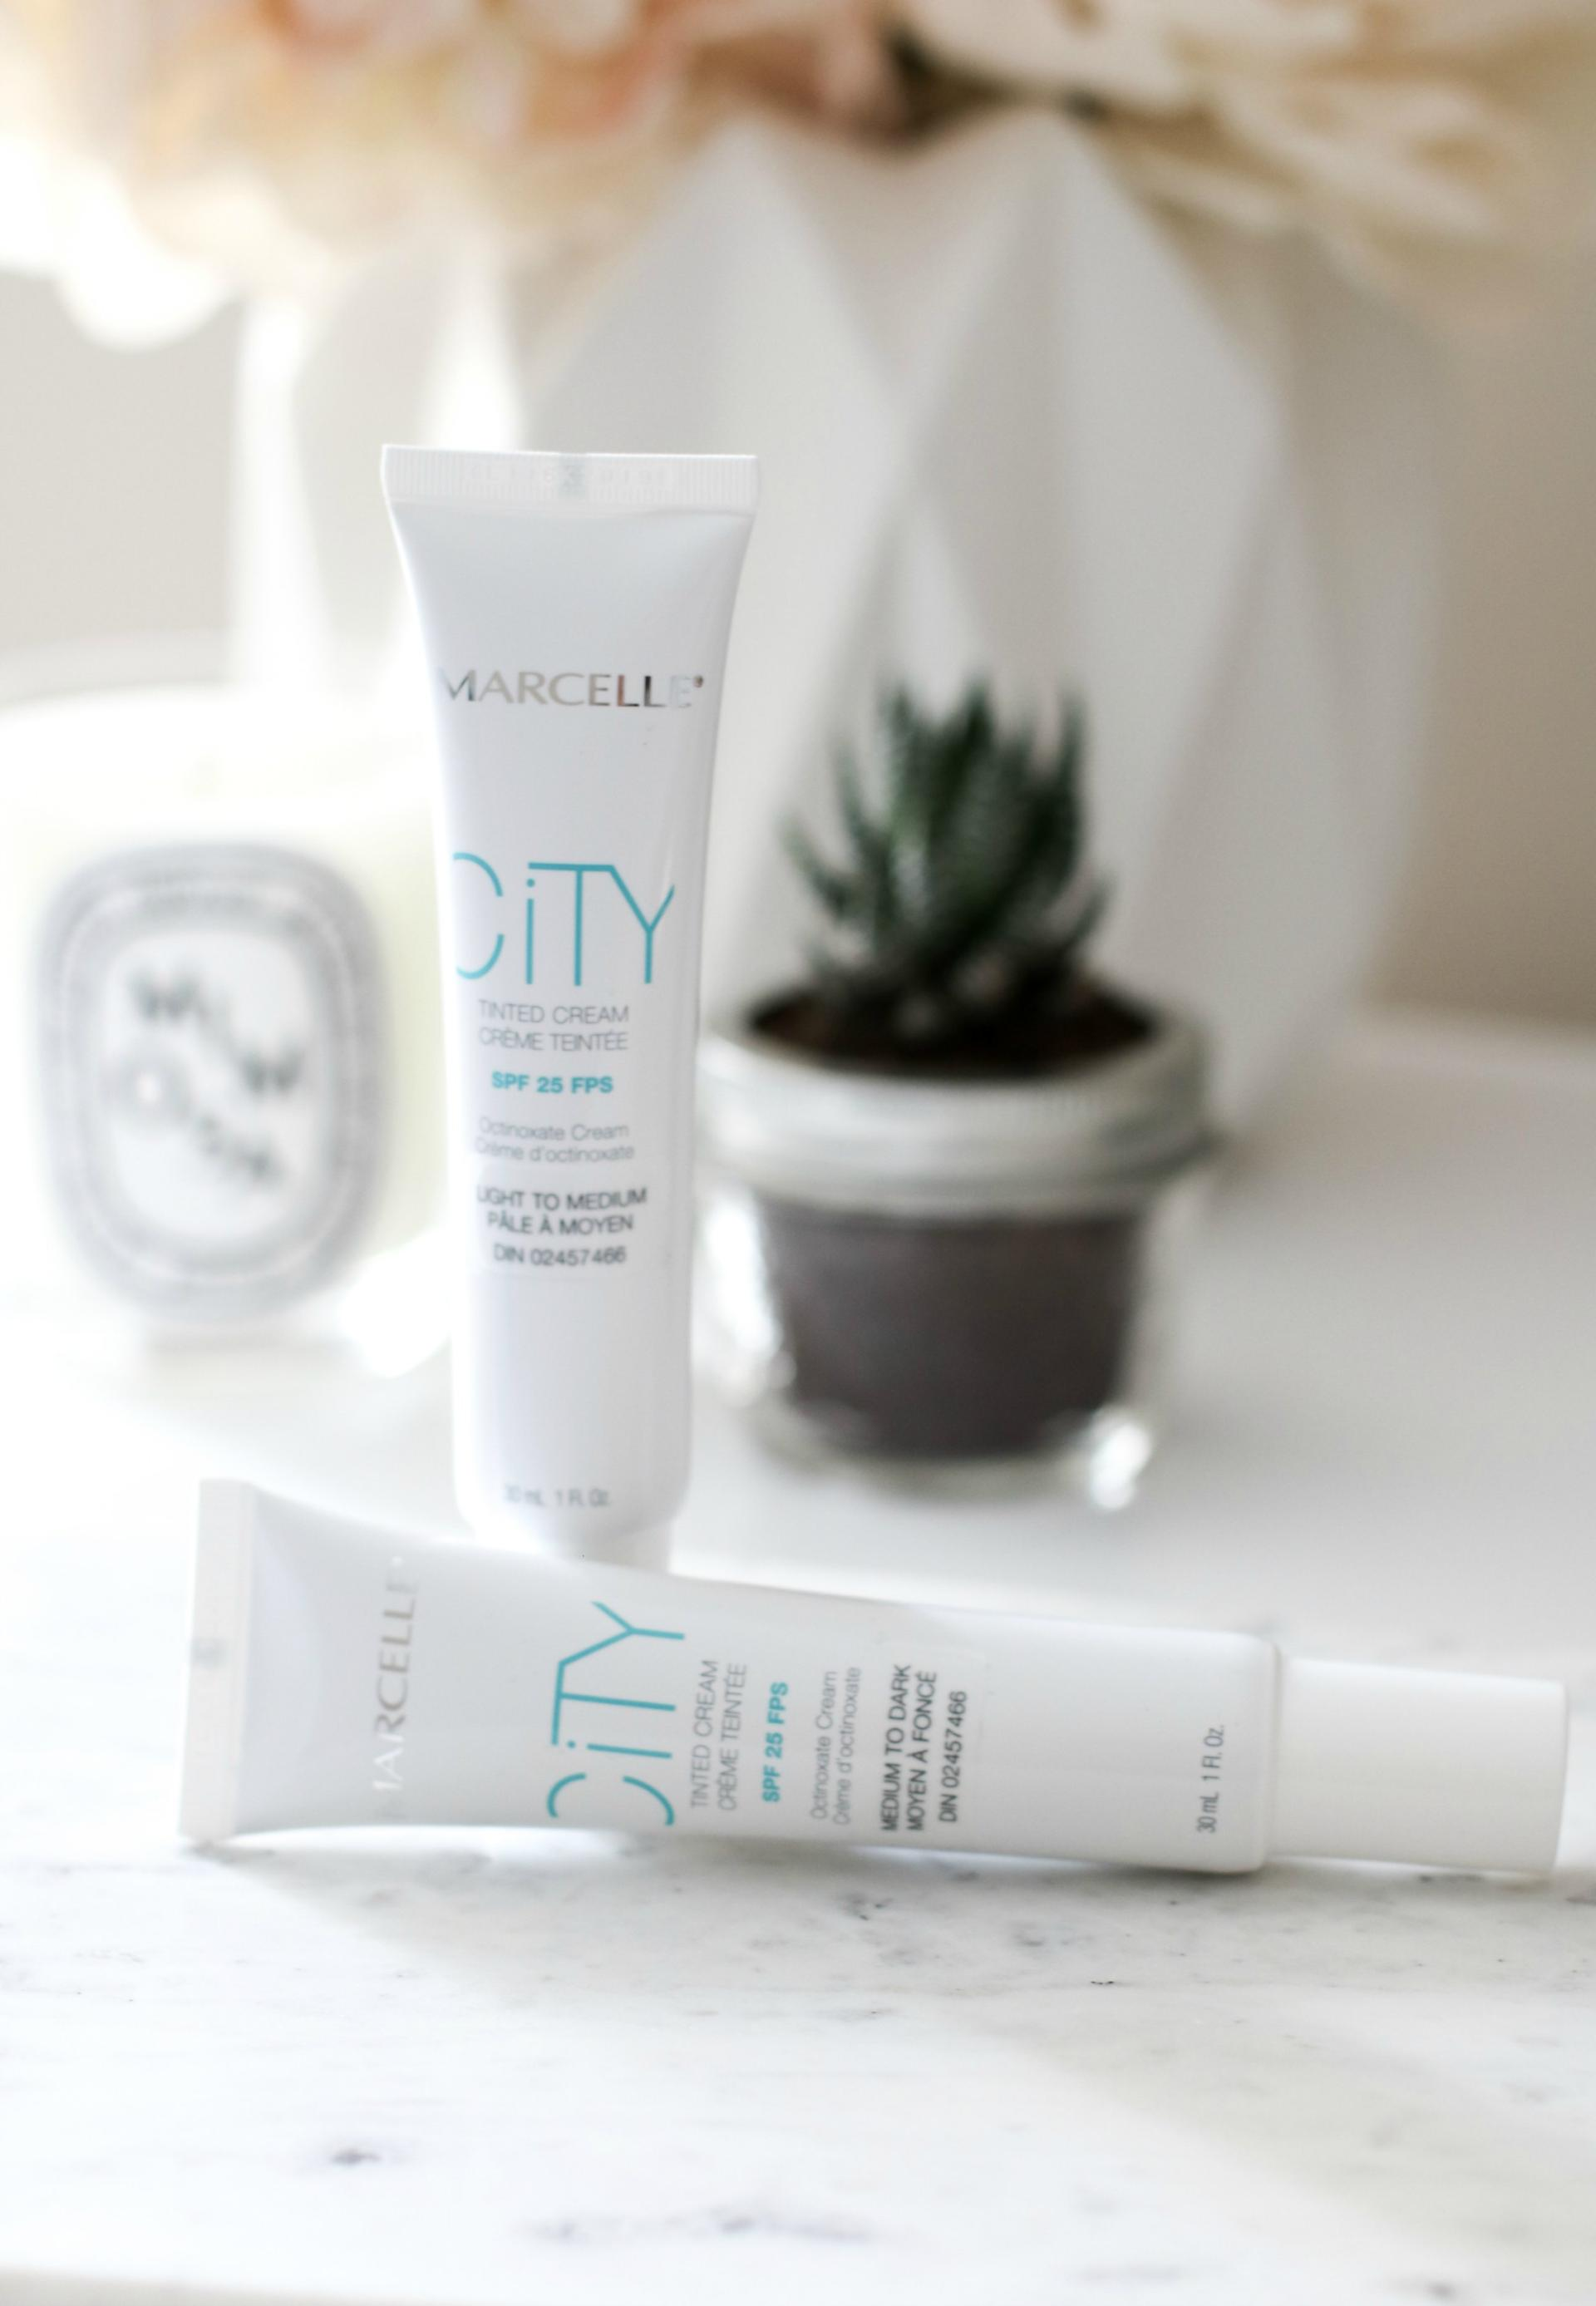 Marcelle City Tinted Moisturizer